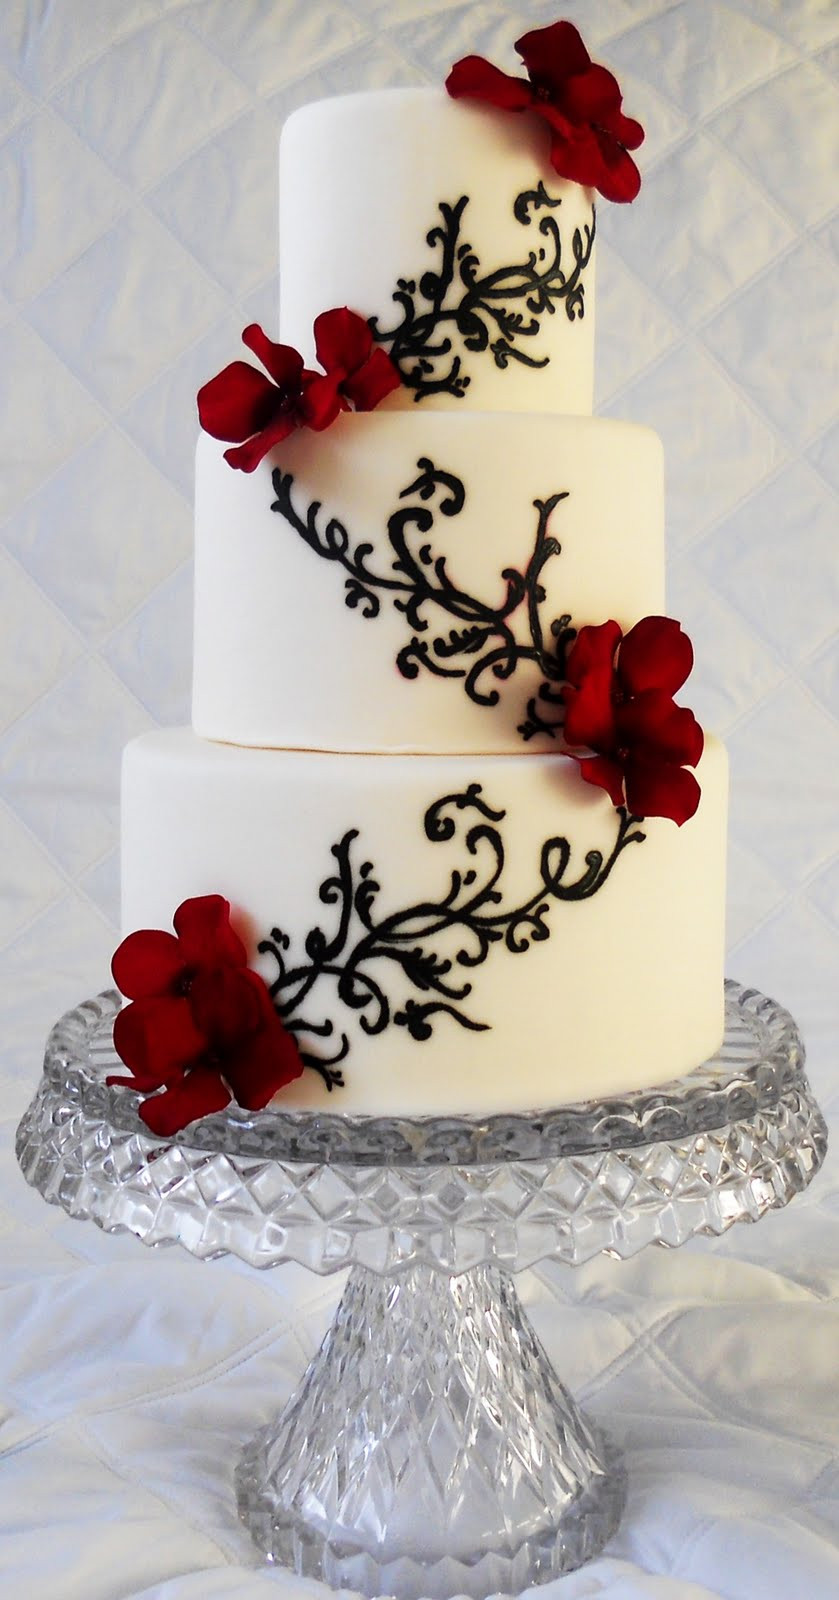 Red And White Wedding Cakes Pictures  Memorable Wedding Find the Best Red Black and White